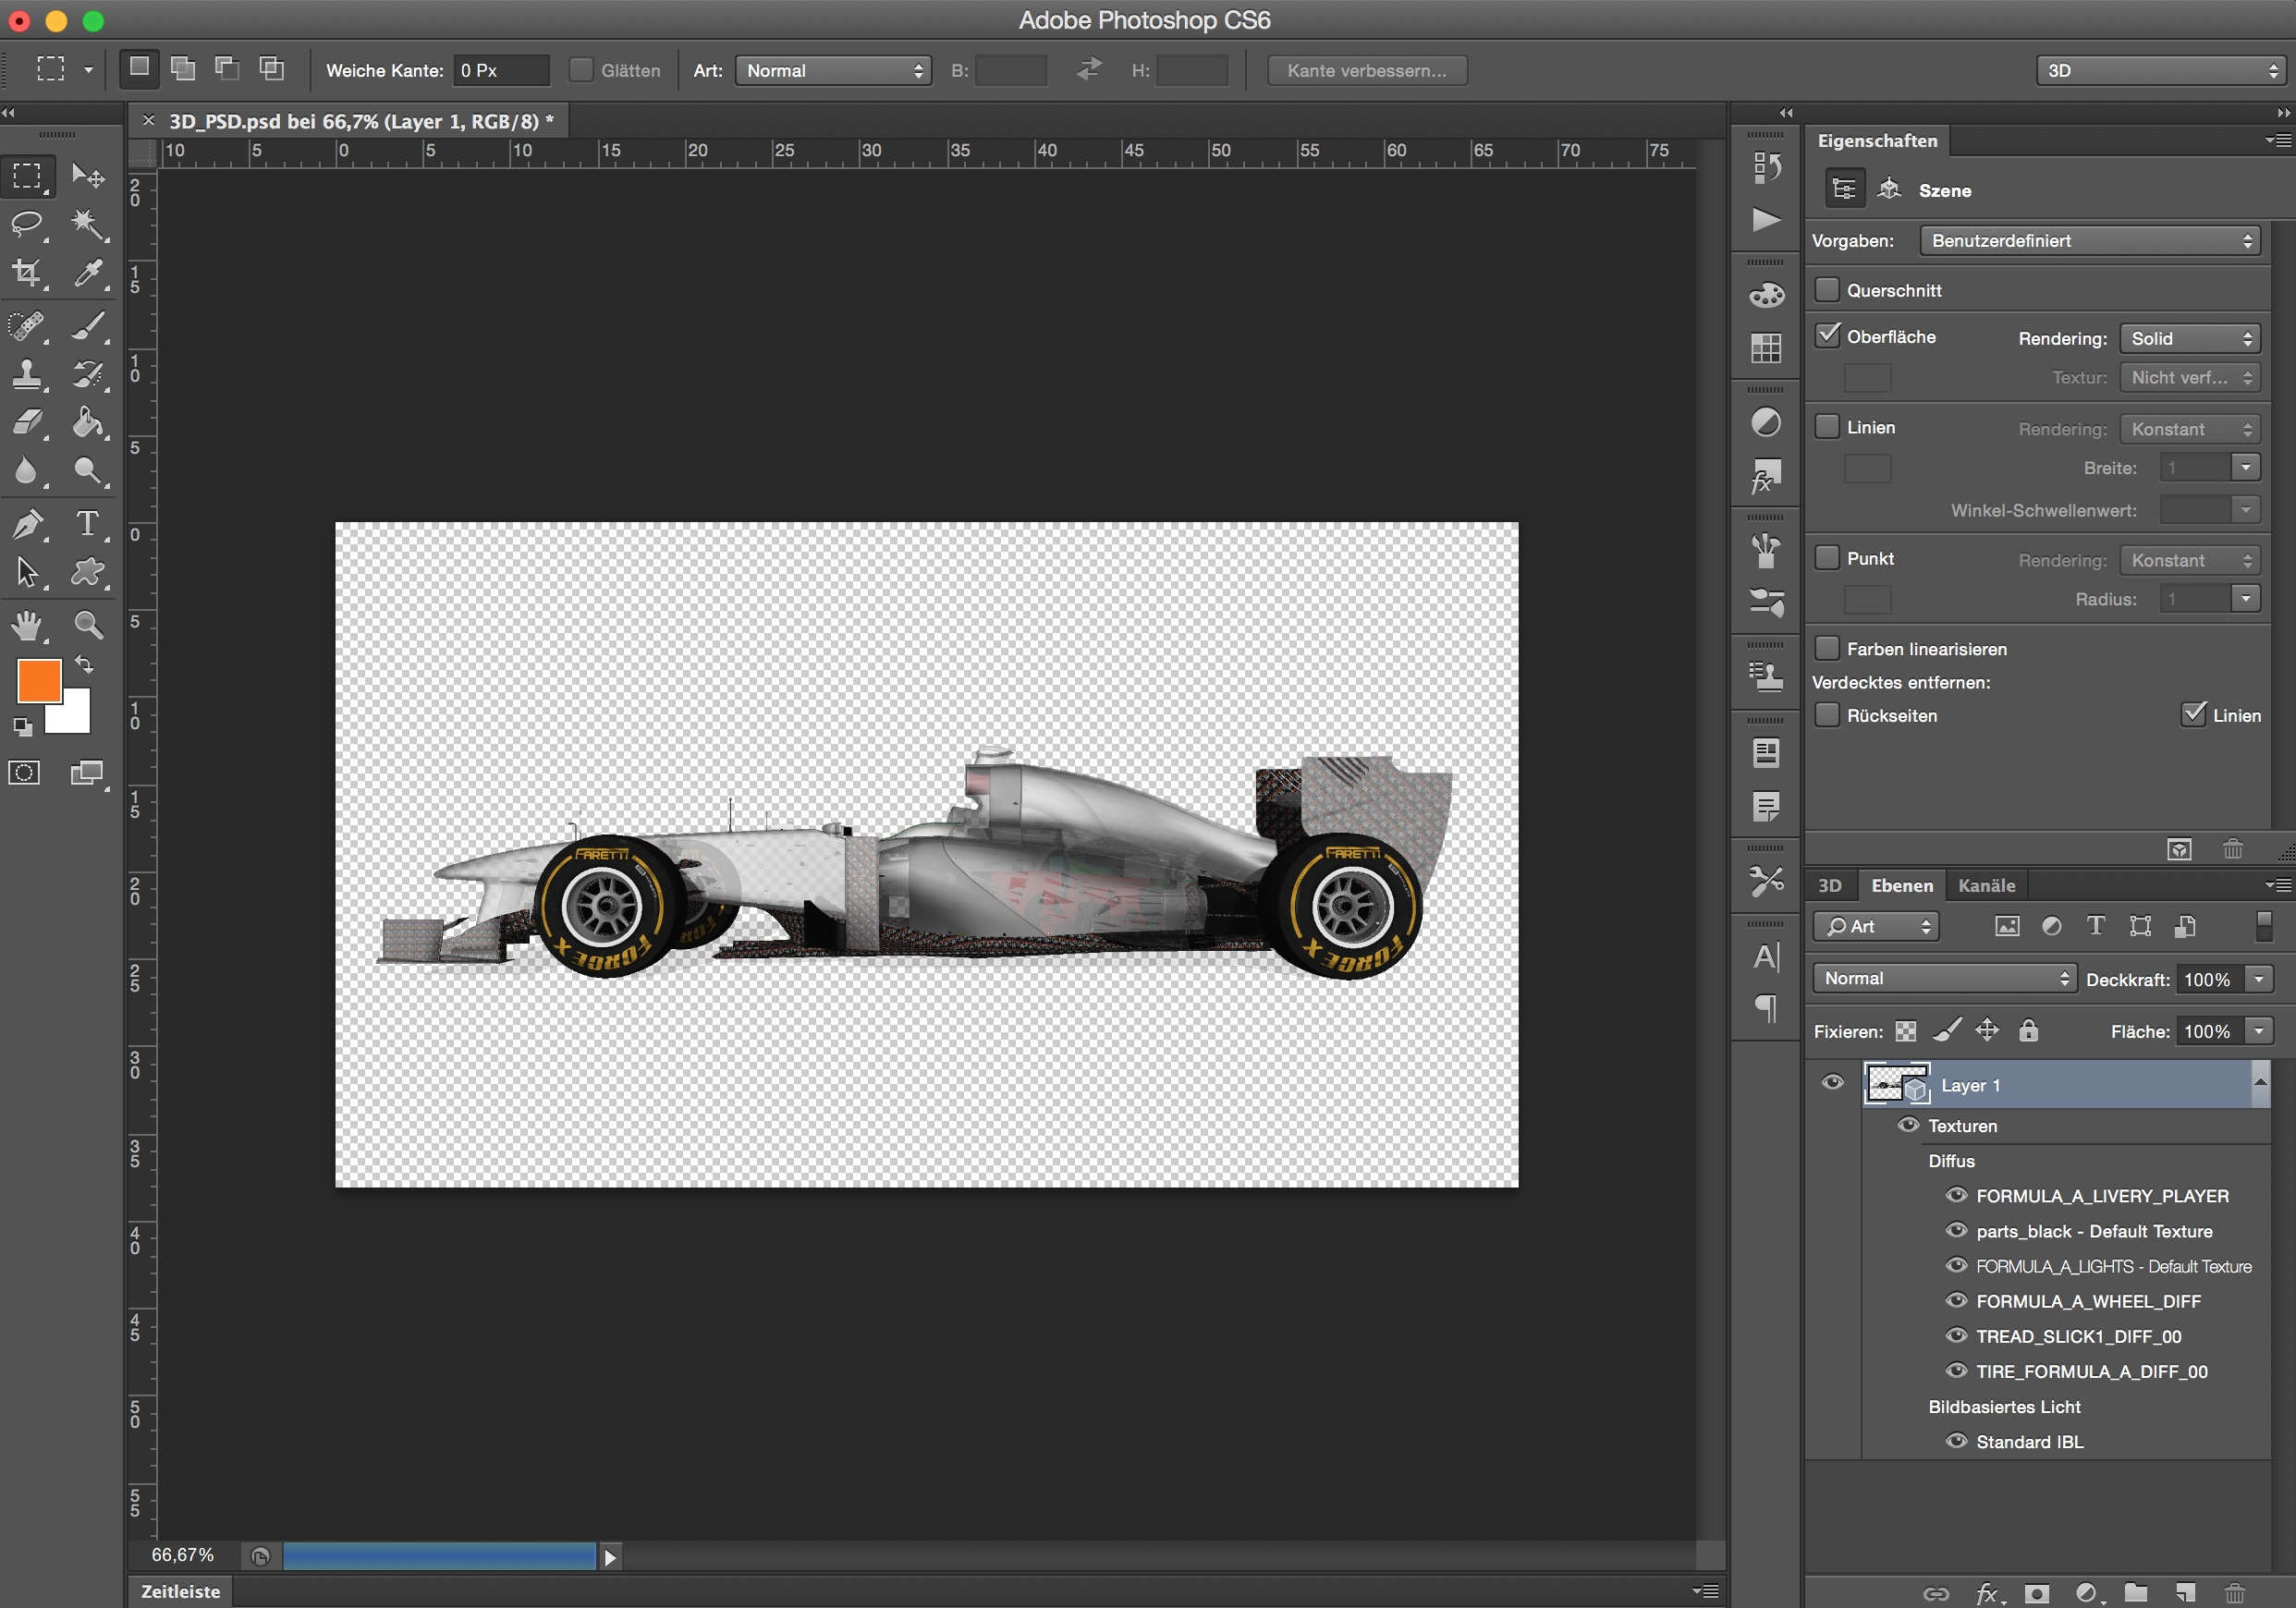 Screenshot 2 Edited Formula A Livery Playerpsb File Within The 3D Template 3 Of Model Gets Updated But Texture